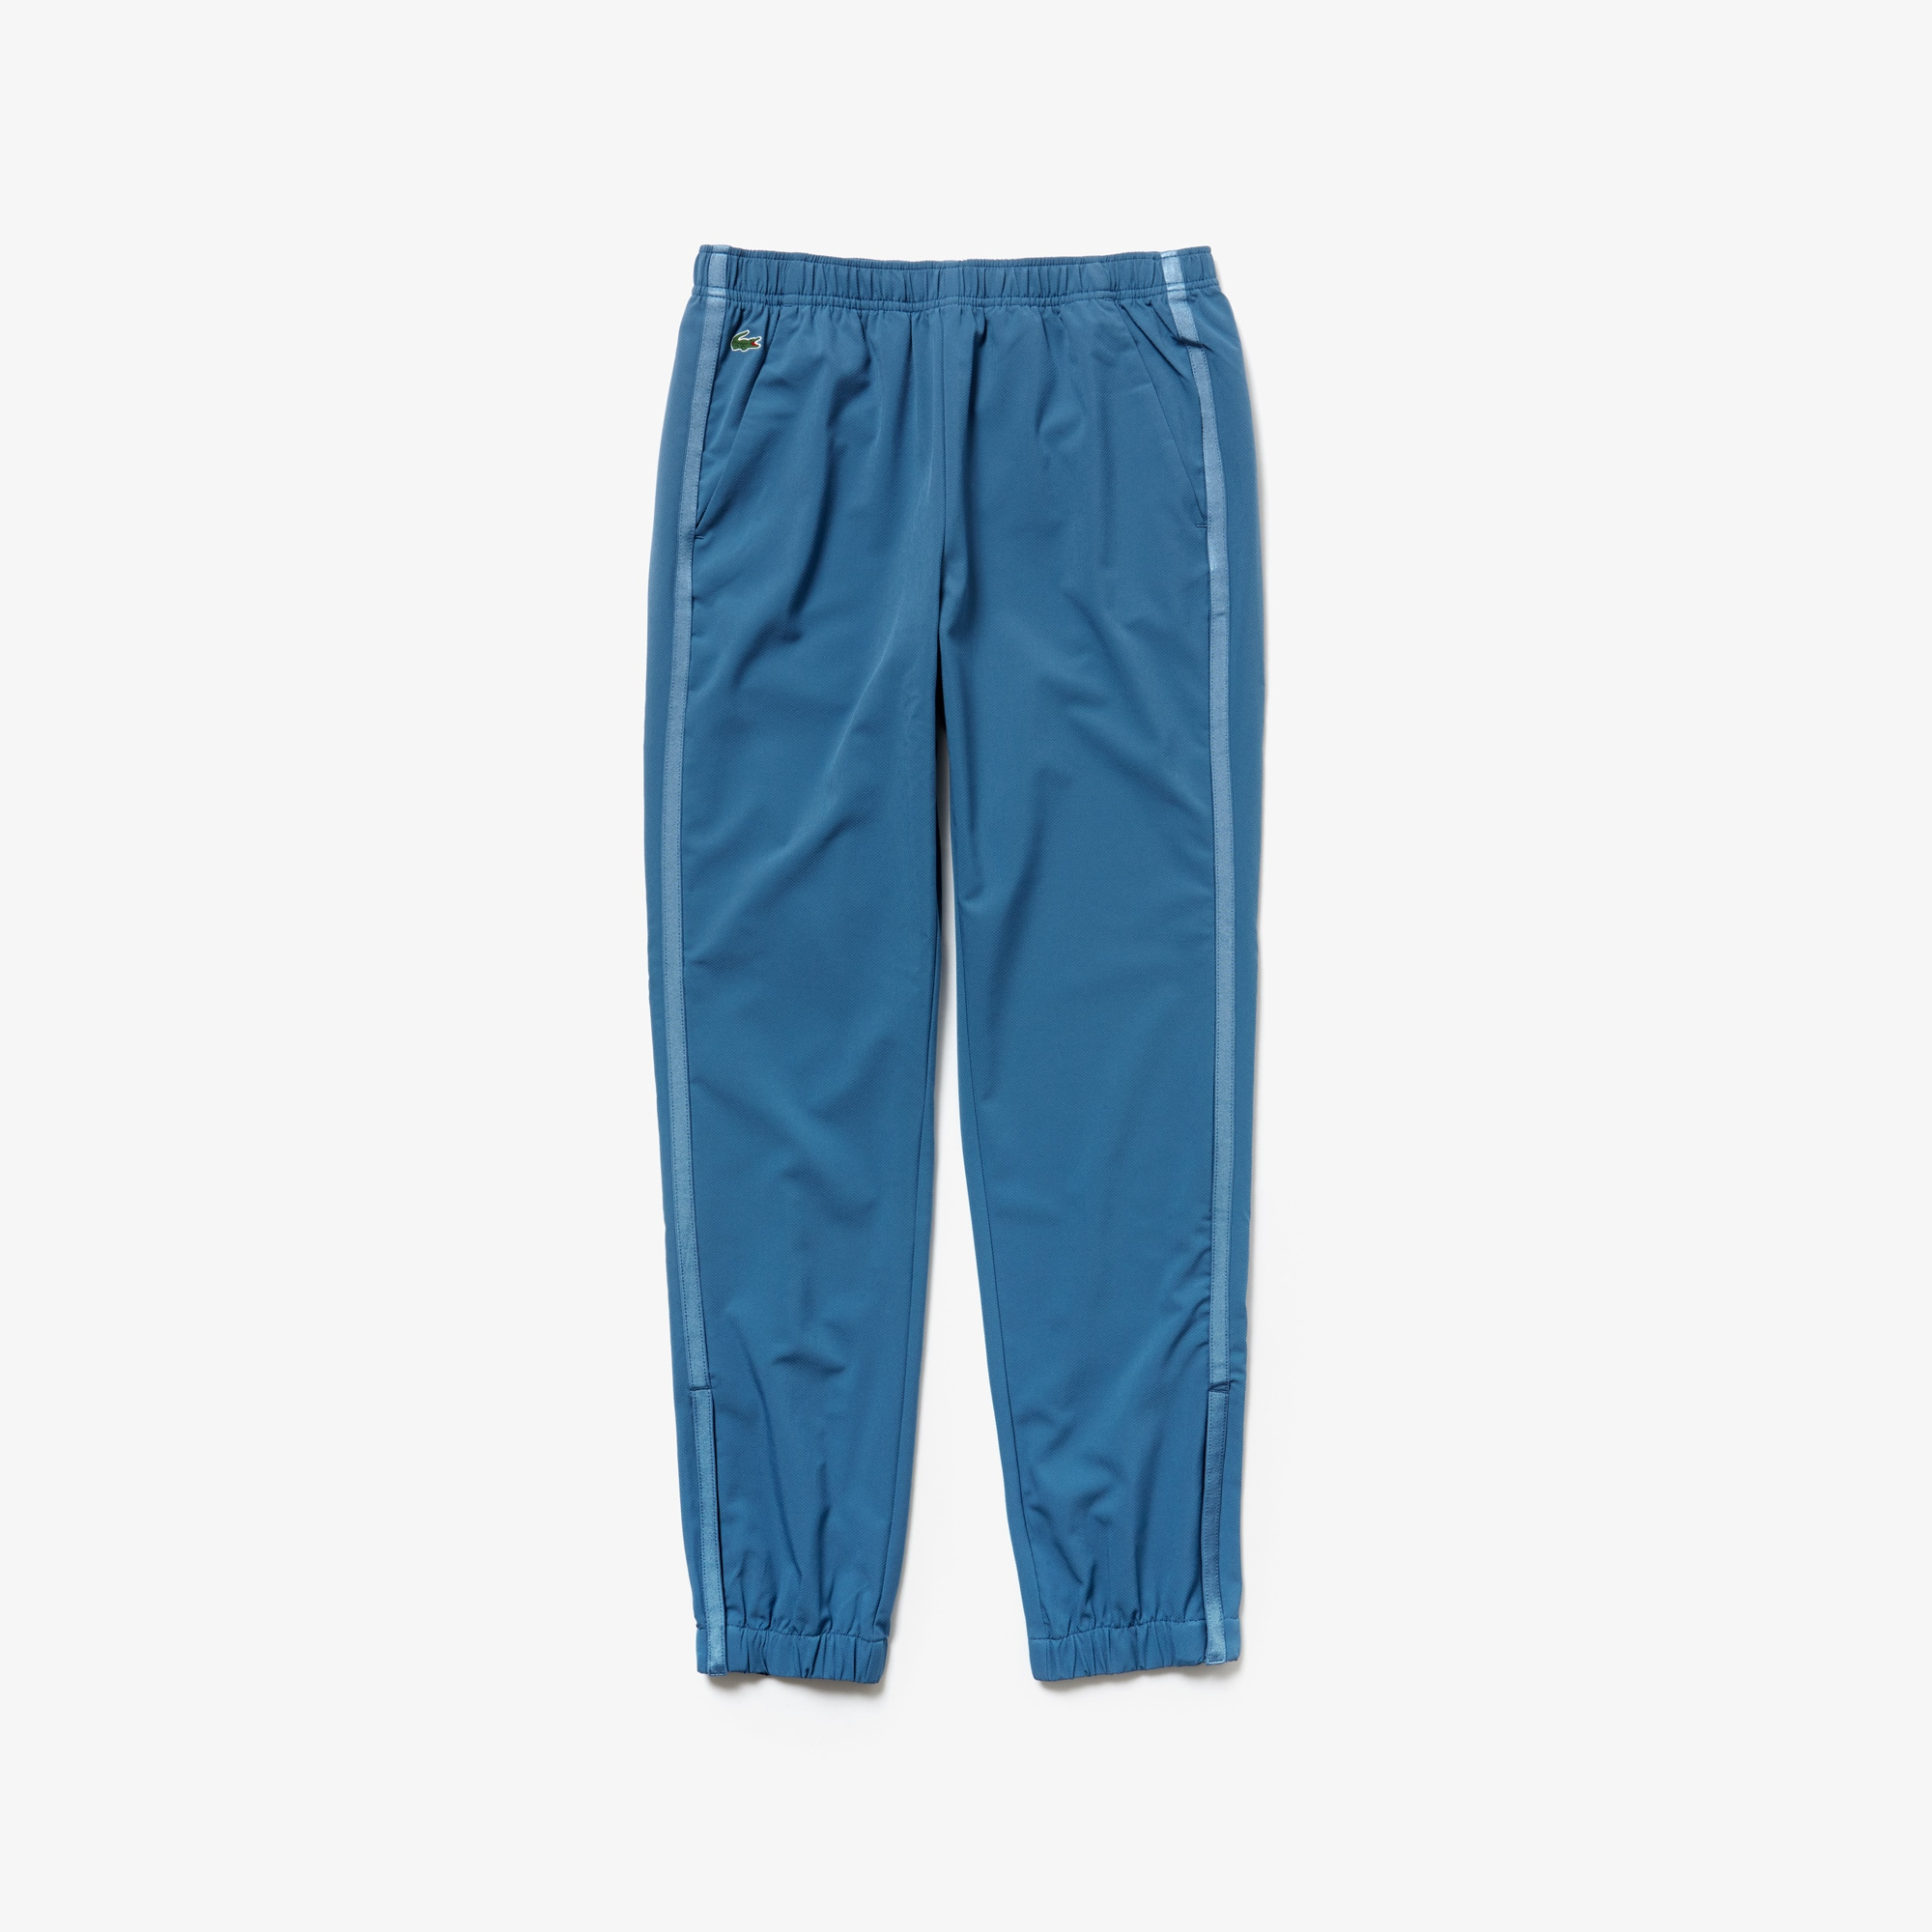 Women's SPORT Water-Resistant Tennis Sweatpants